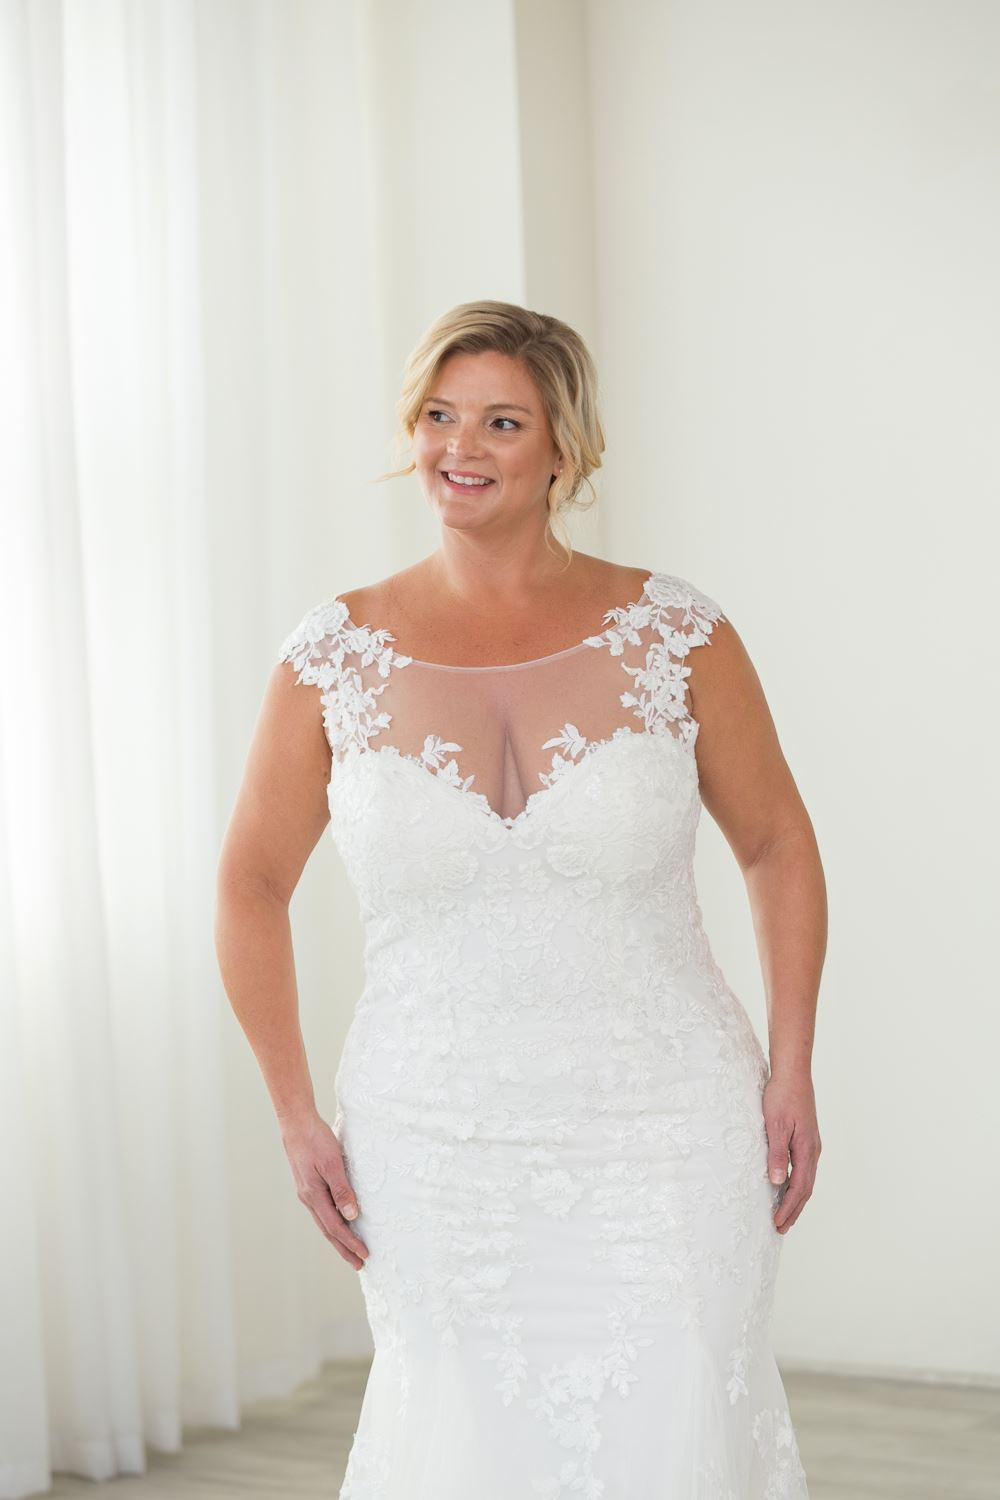 Marie tits discount mature wedding gowns with